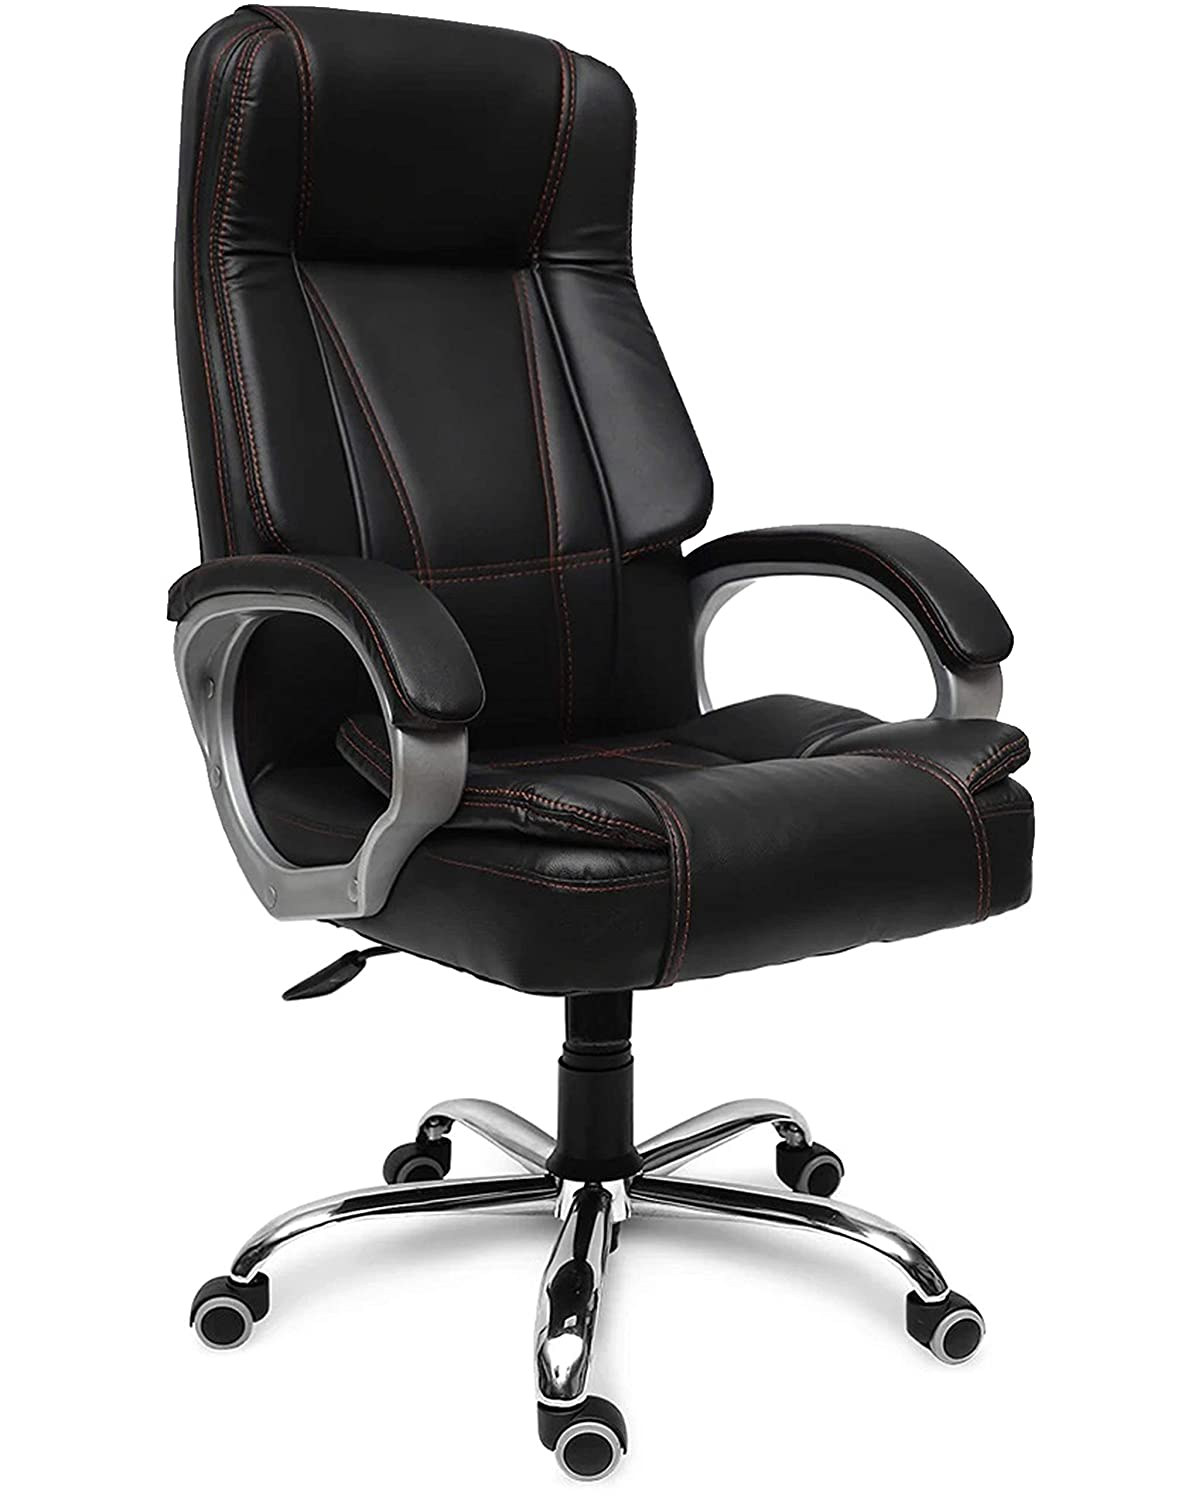 GreenSoul® Vienna High-Back Leatherette Executive Ergonomic Office Chair review